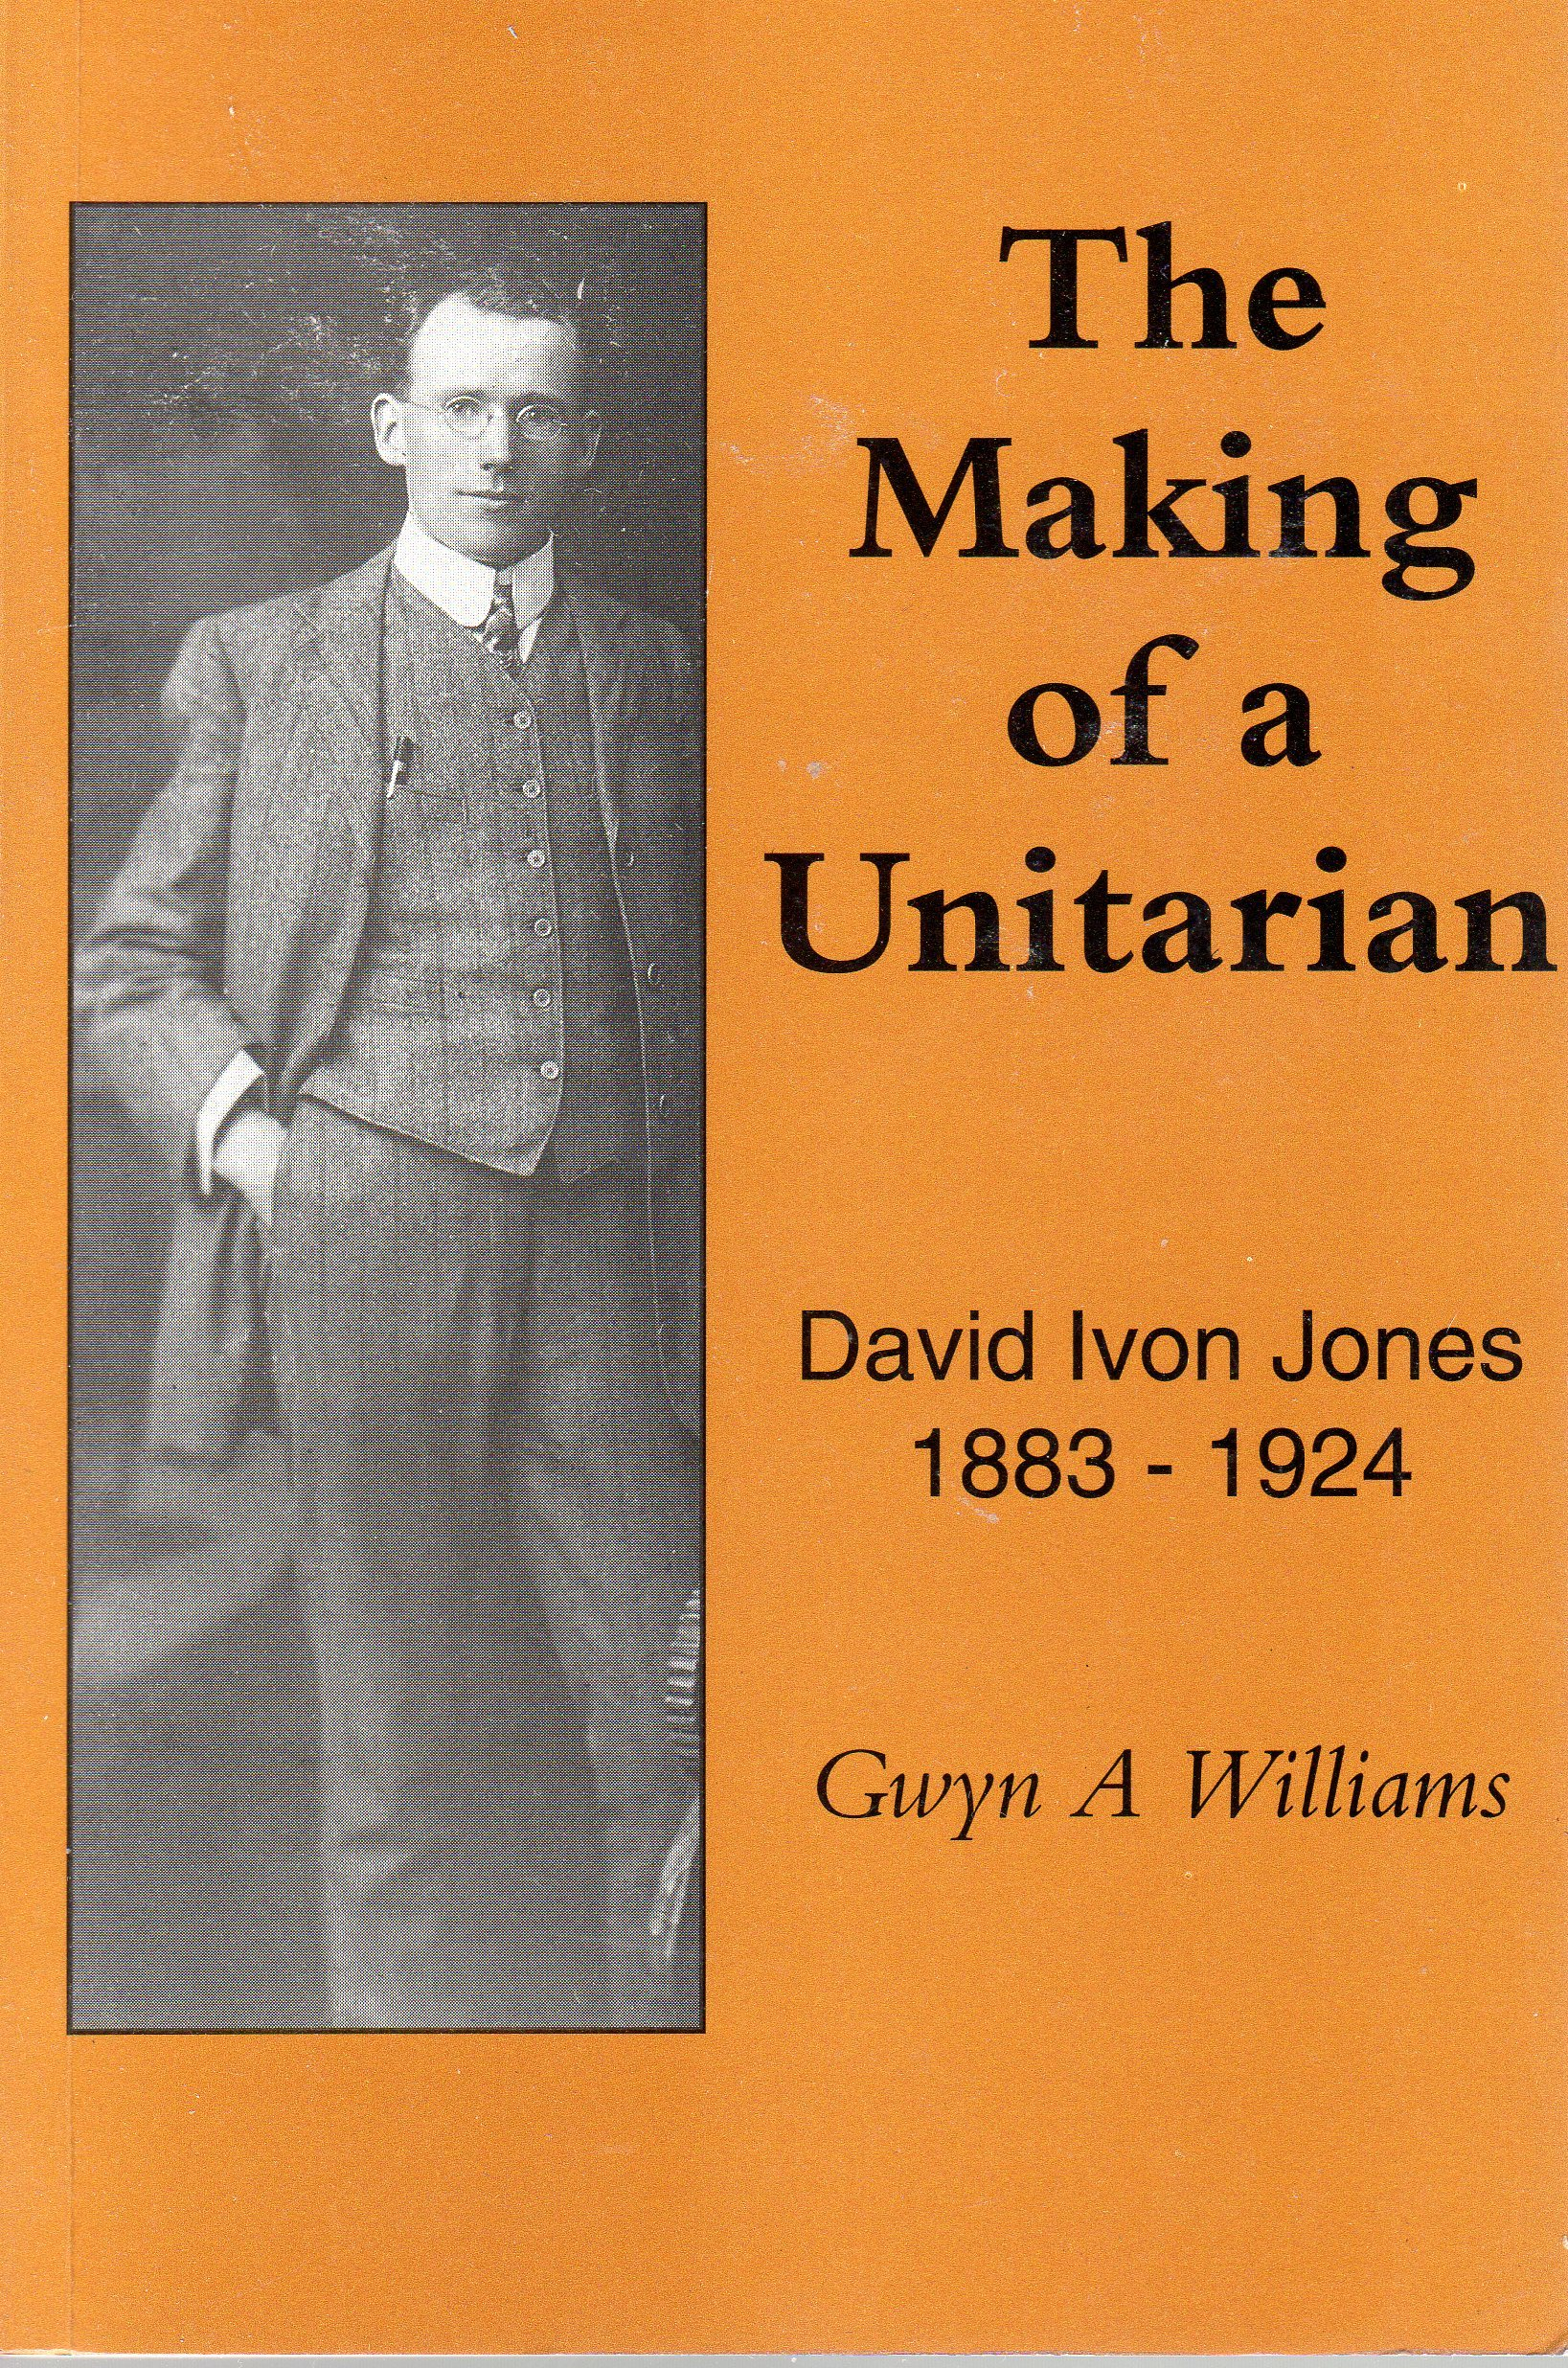 The Making of a Unitarian